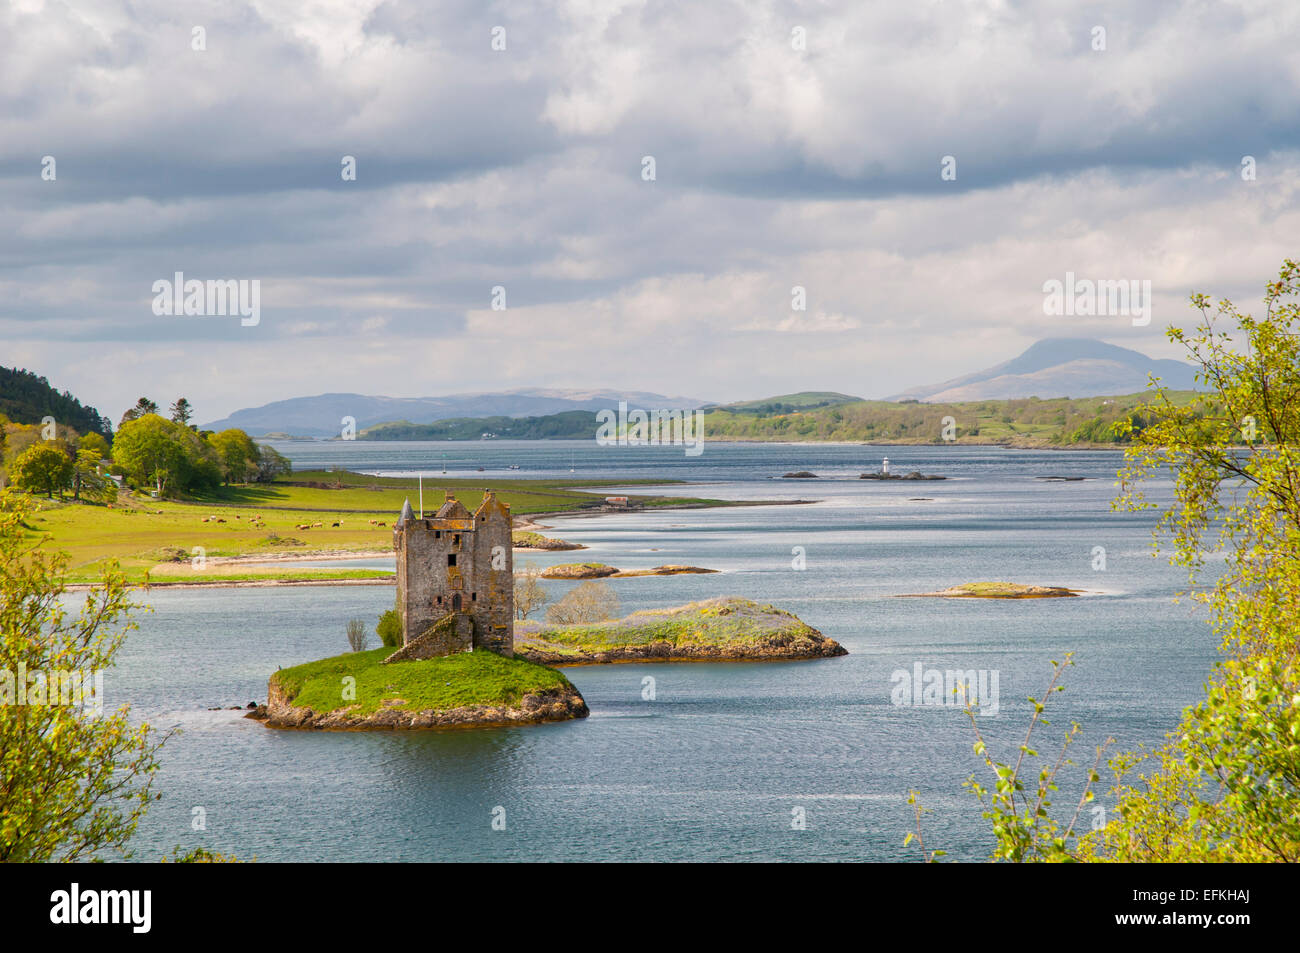 Castle Stalker perched on an island in Loch Linnhe, Argyll, Scotland. May. - Stock Image